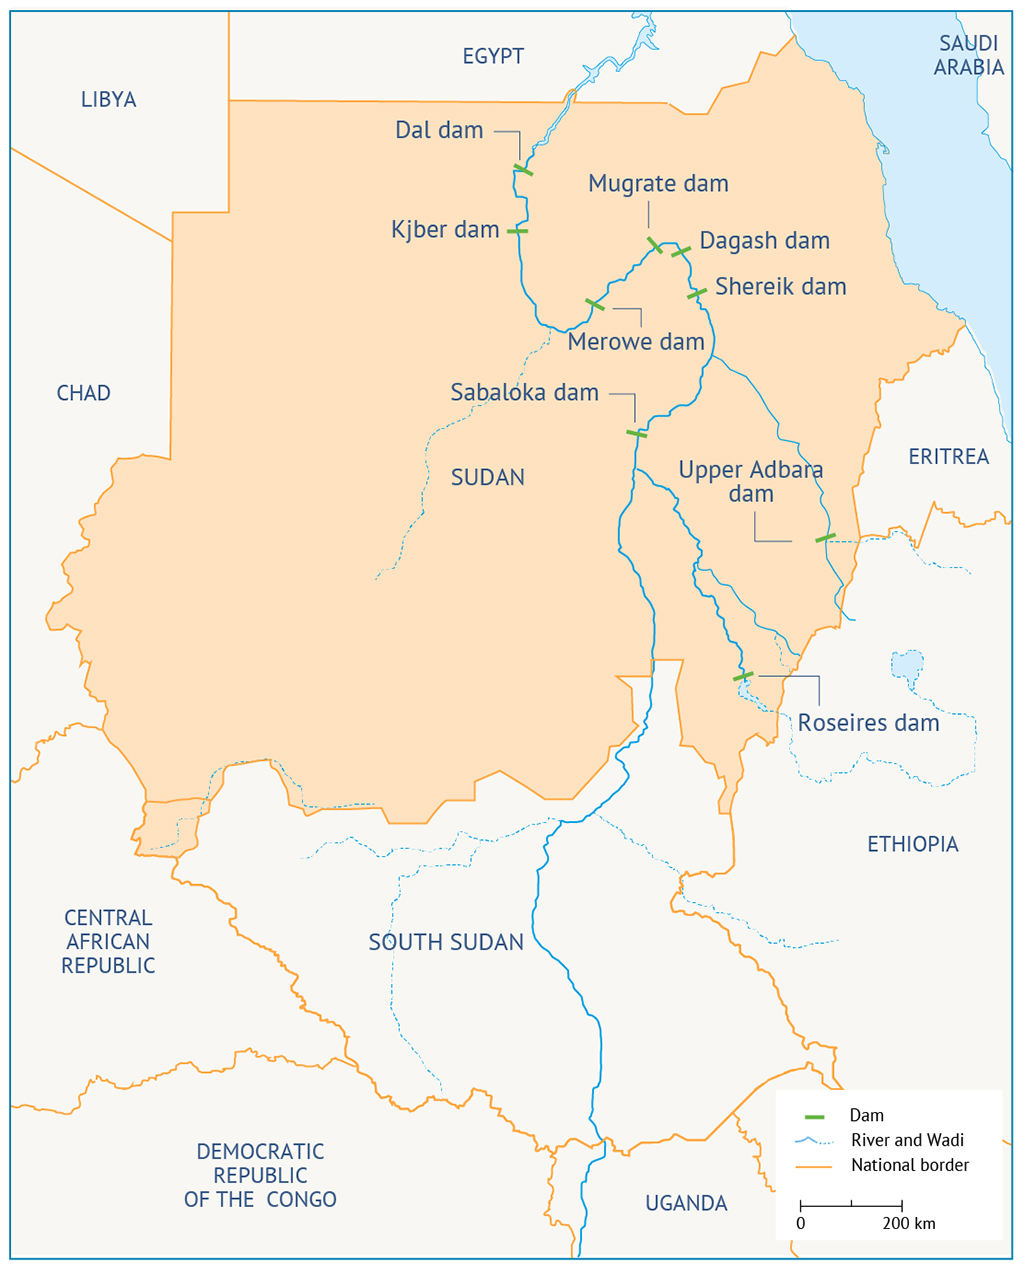 Map 1: Location of dams on the Nile in Sudan Dam